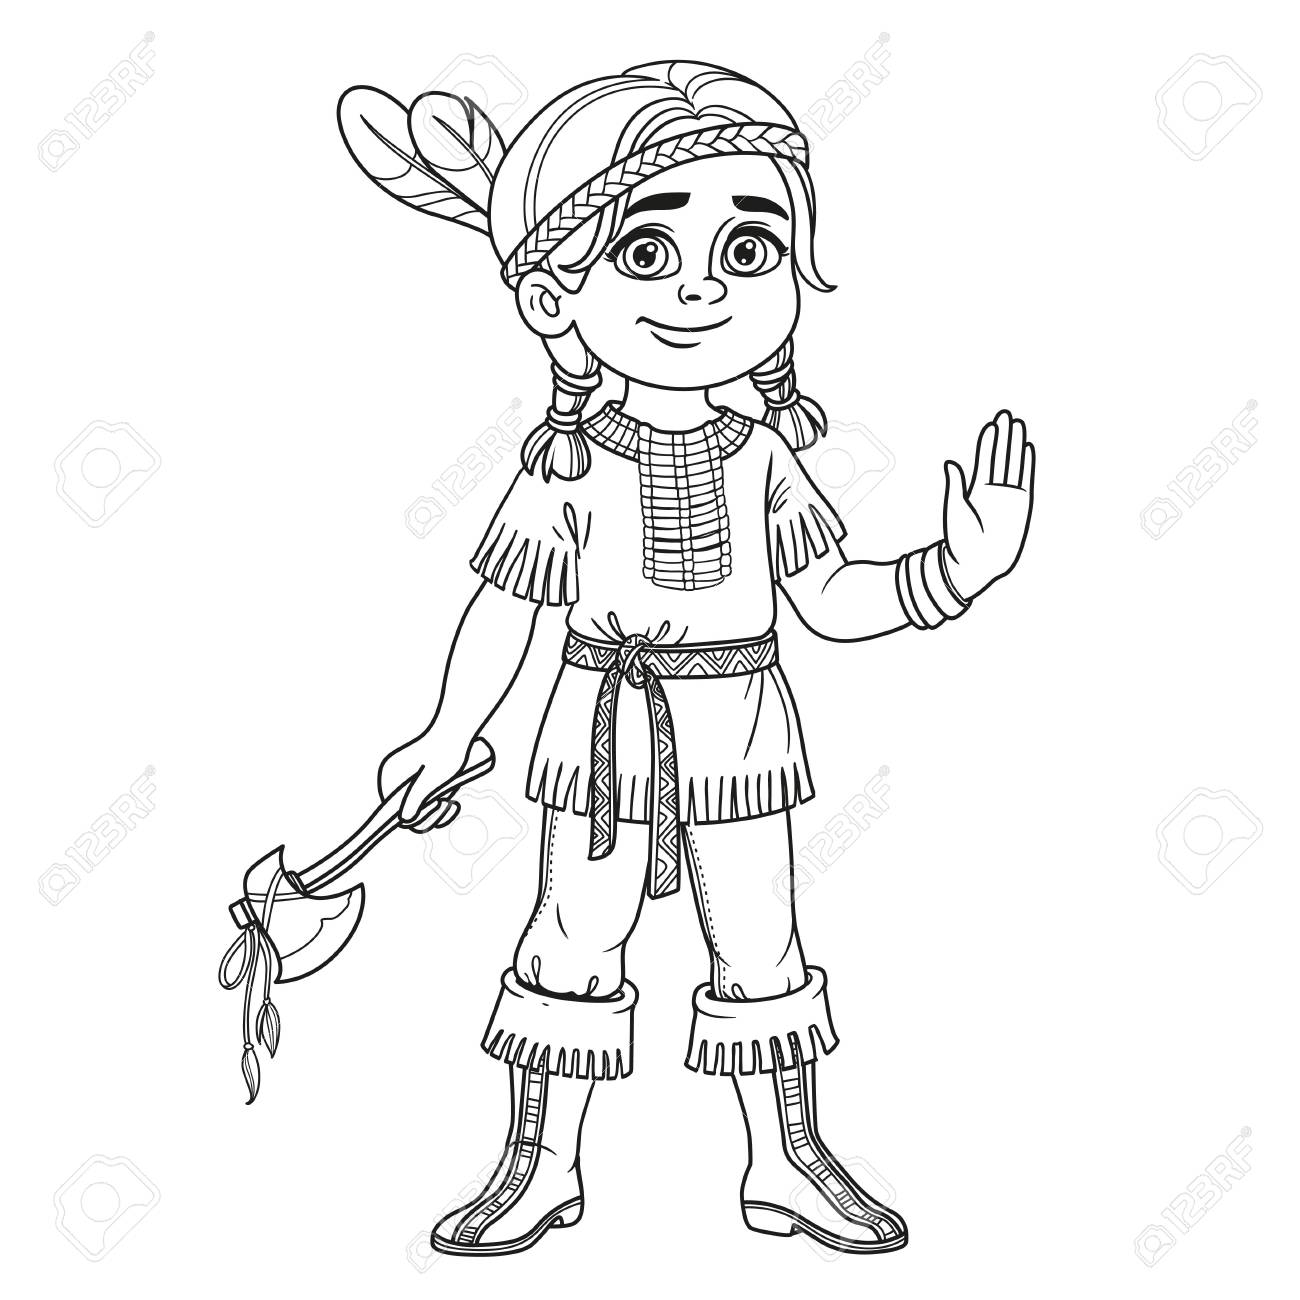 Cute Boy In Indian Costume Outlined For Coloring Page Royalty Free ...